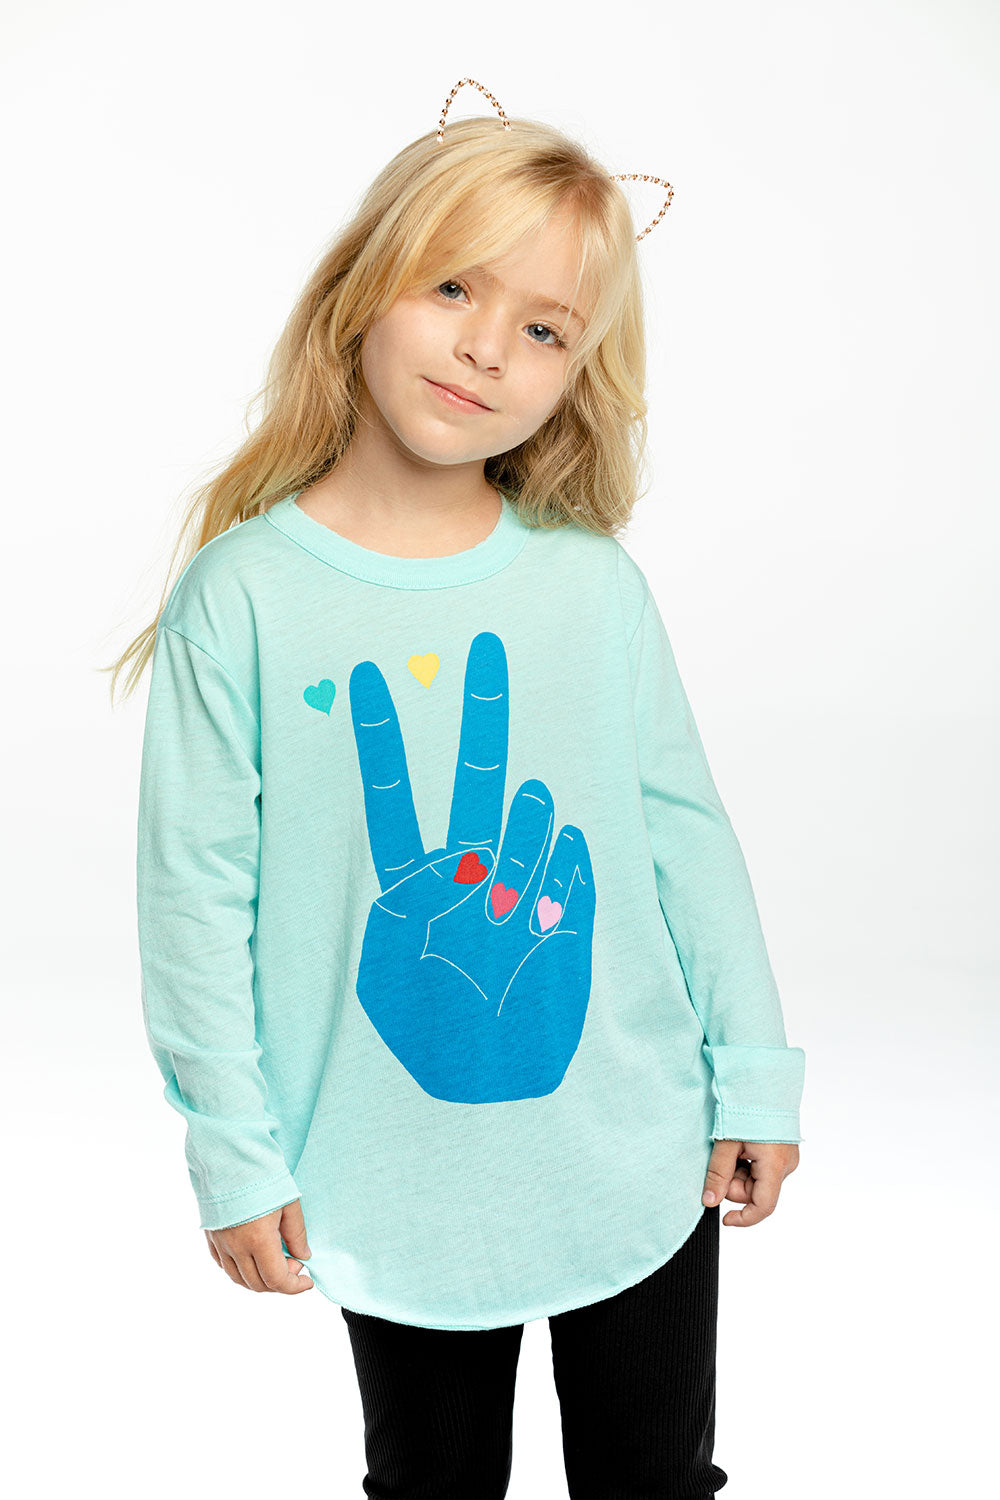 Peace And Hearts GIRLS chaserbrand4.myshopify.com